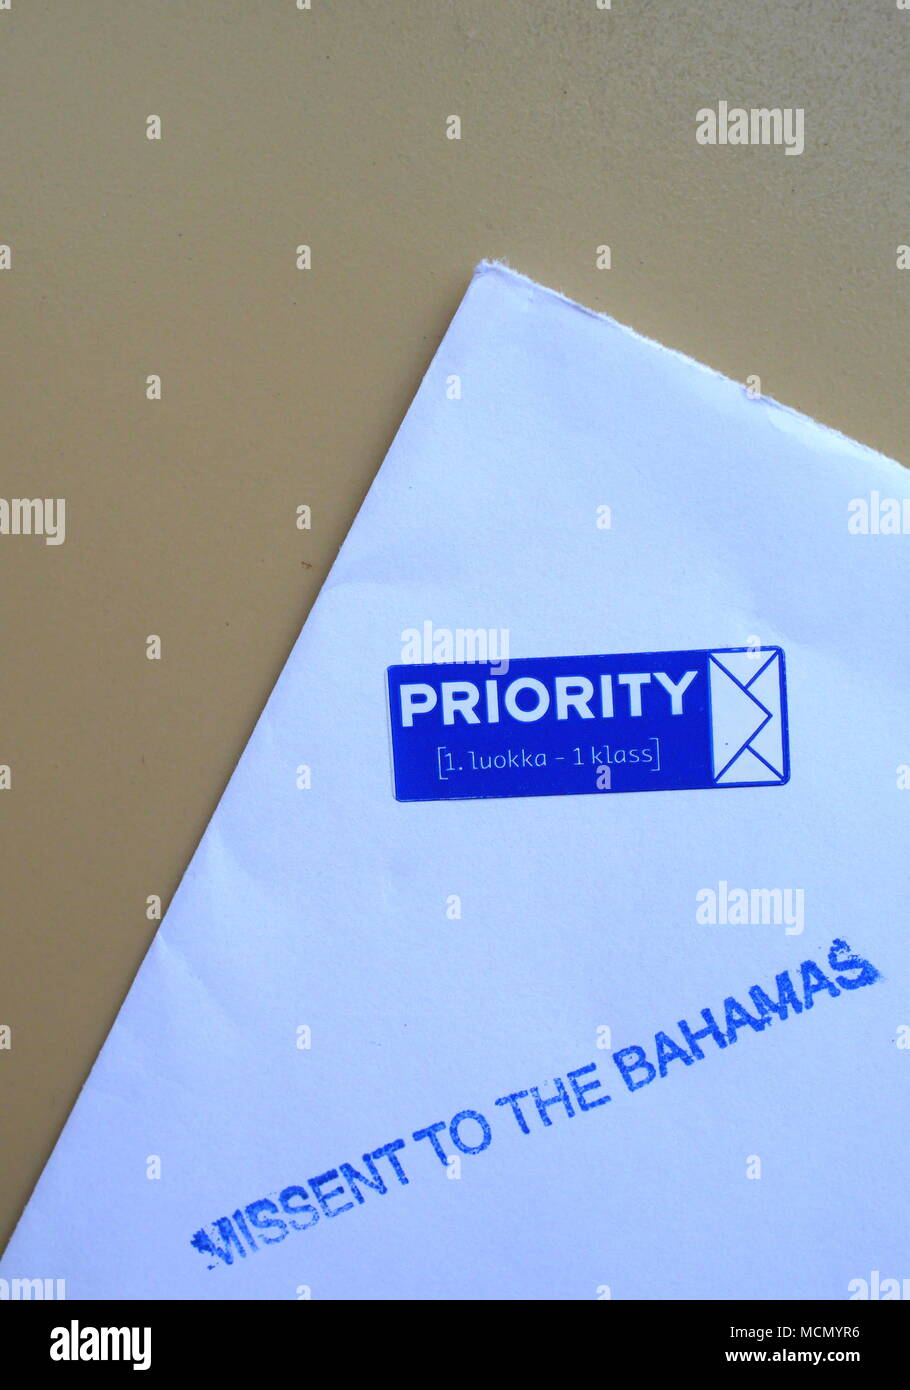 Priority letter missent or misshipped to the Bahamas - Stock Image